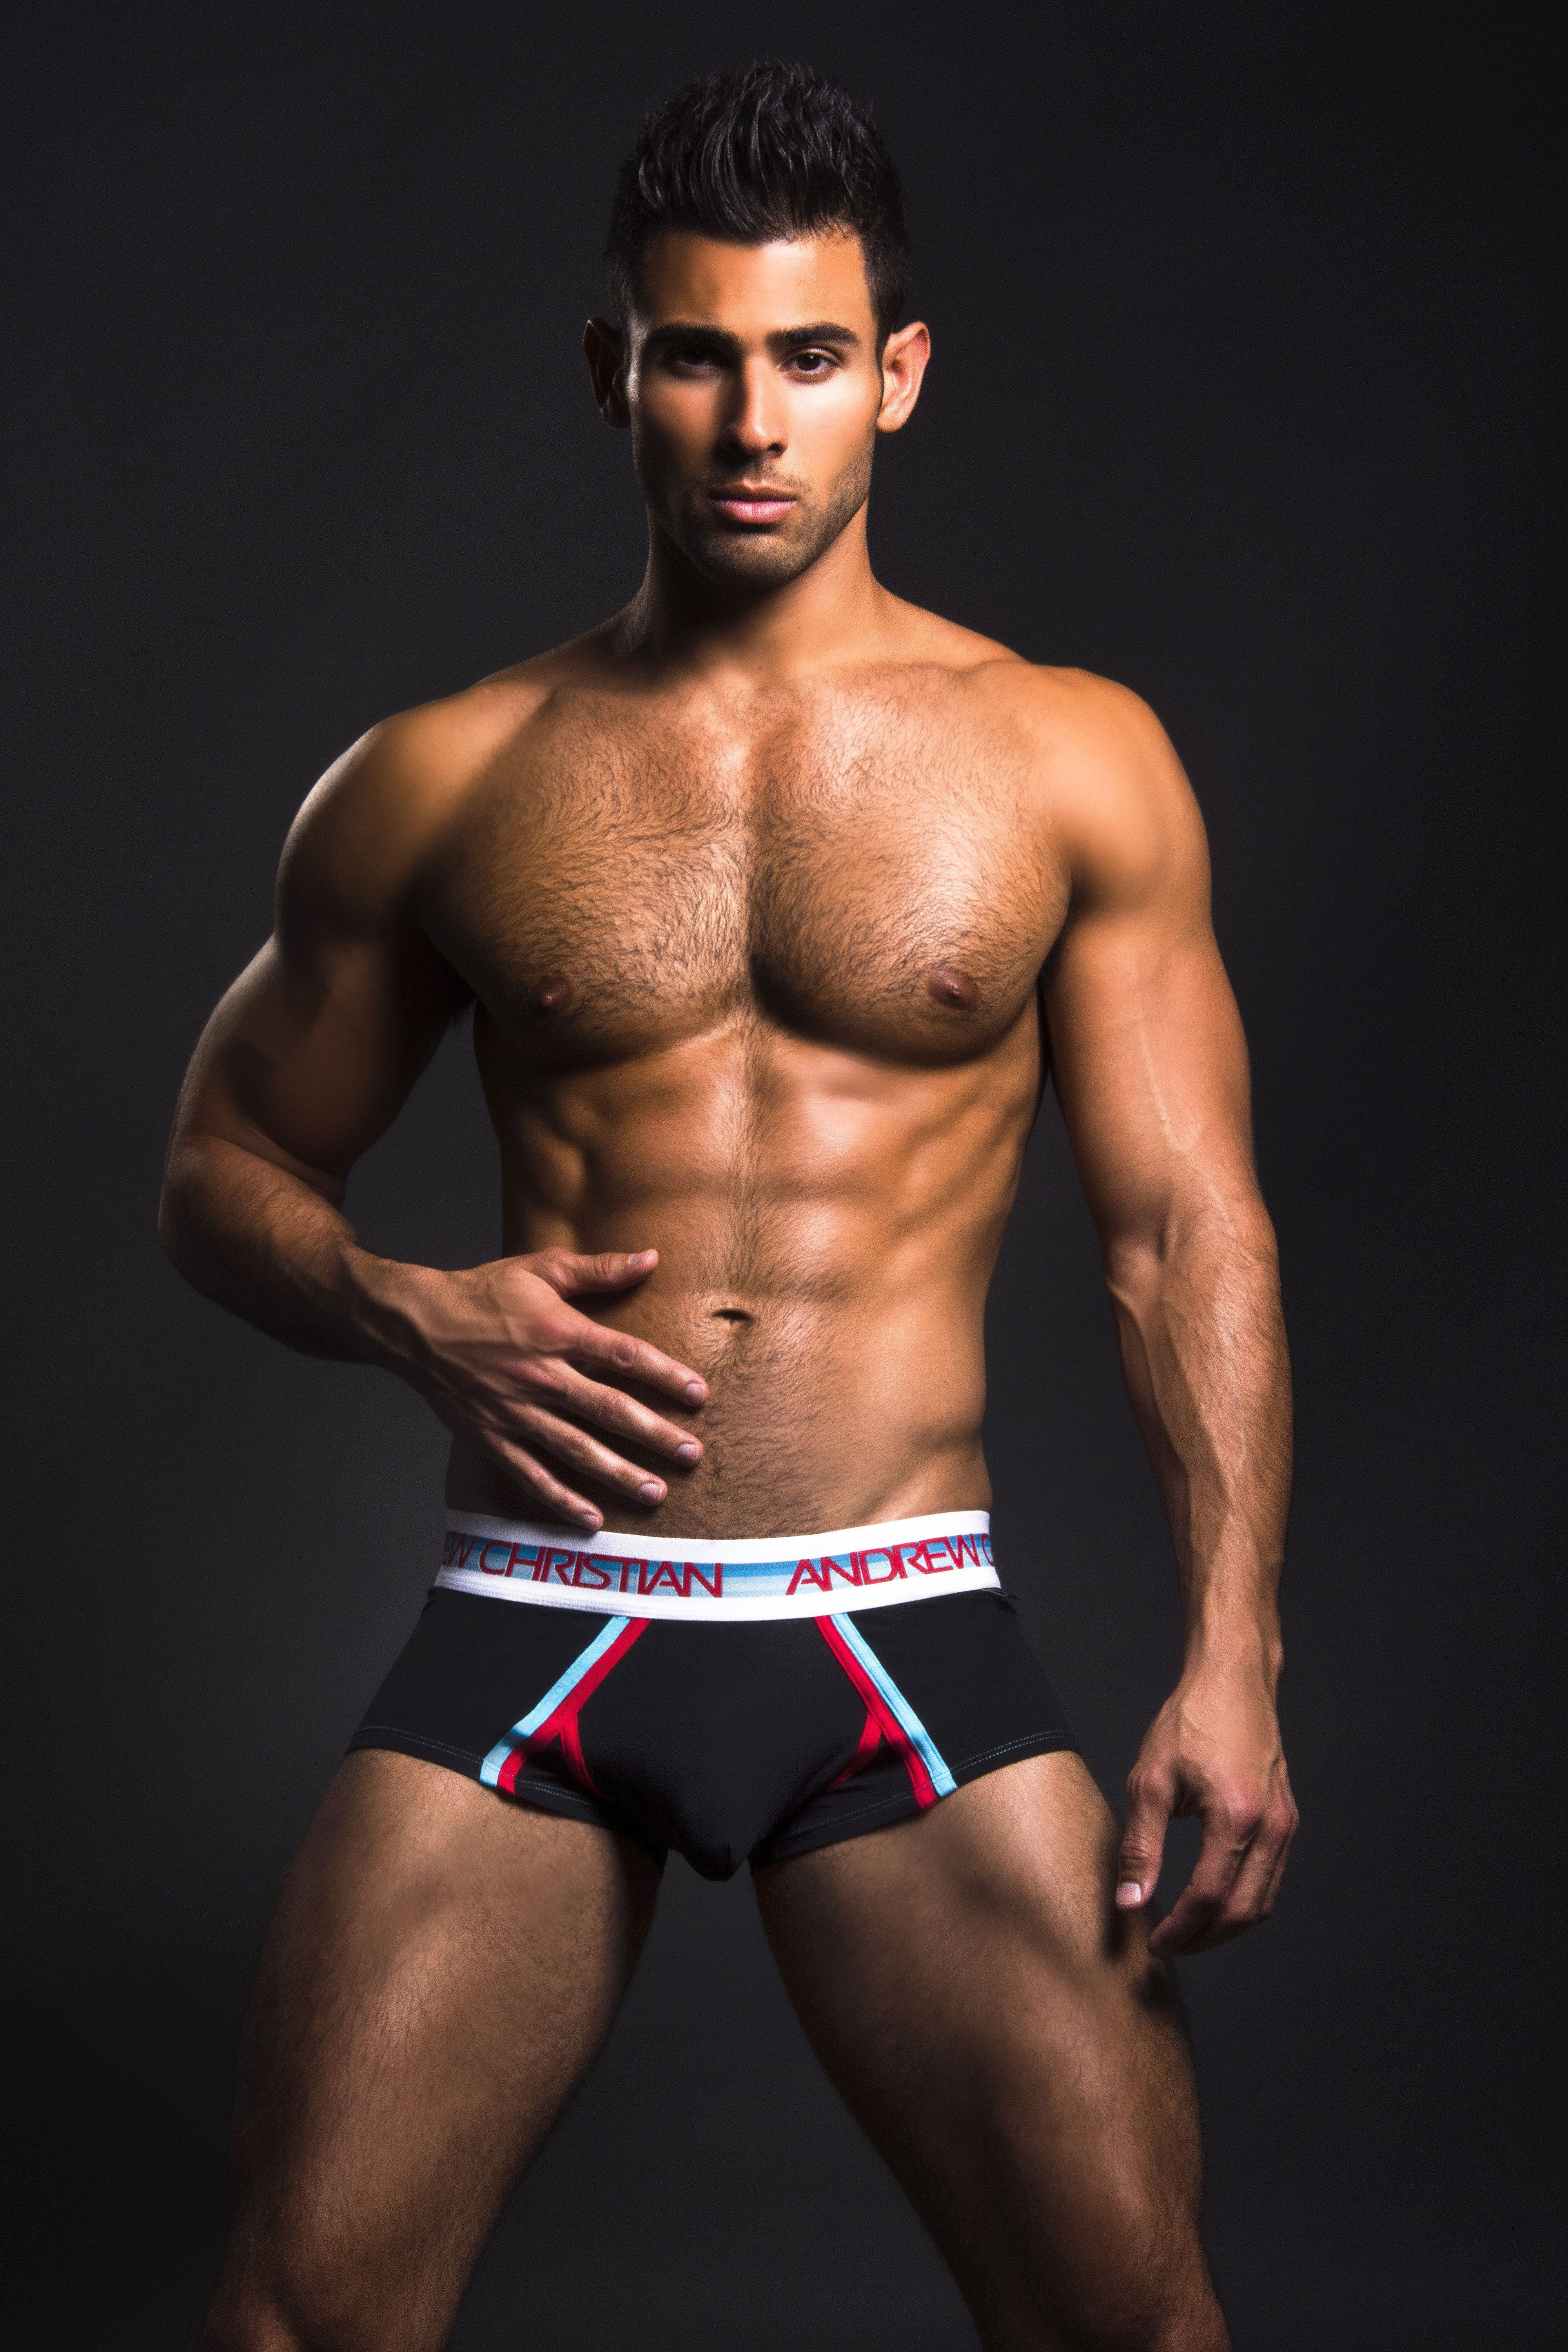 ee0e8845ce Andrew Christian Twerk Boxer, a boxer designed for guys with a larger  behind!